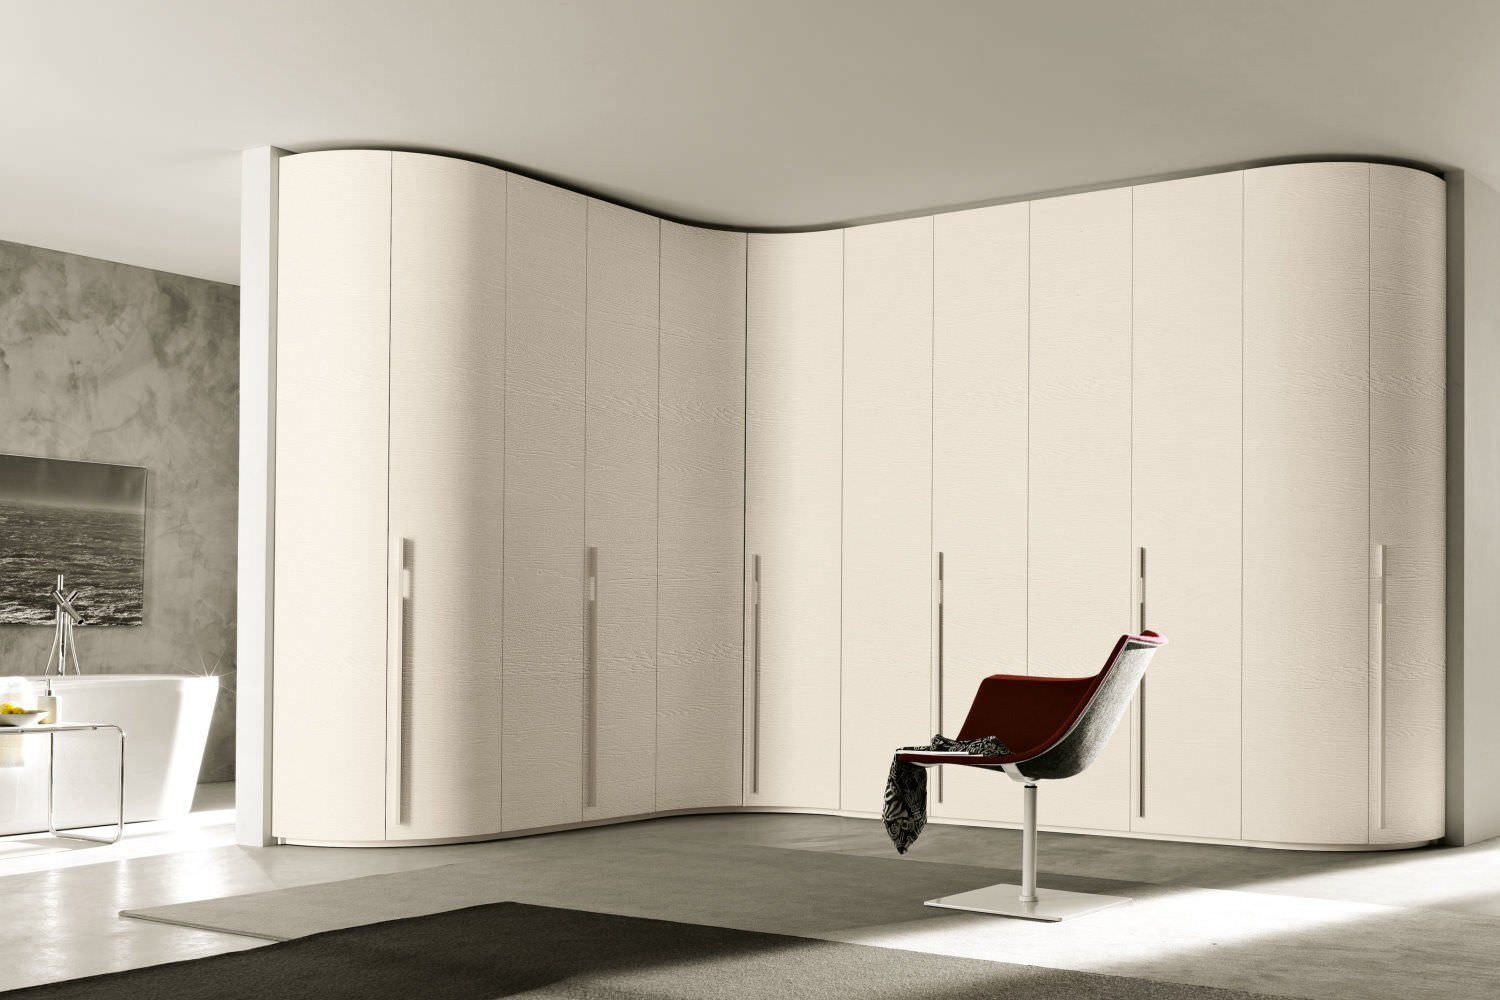 Corner Wardrobe Contemporary Wooden Glossy Lacquered Wood Pertaining To Curved Wardrobe Doors (View 14 of 15)